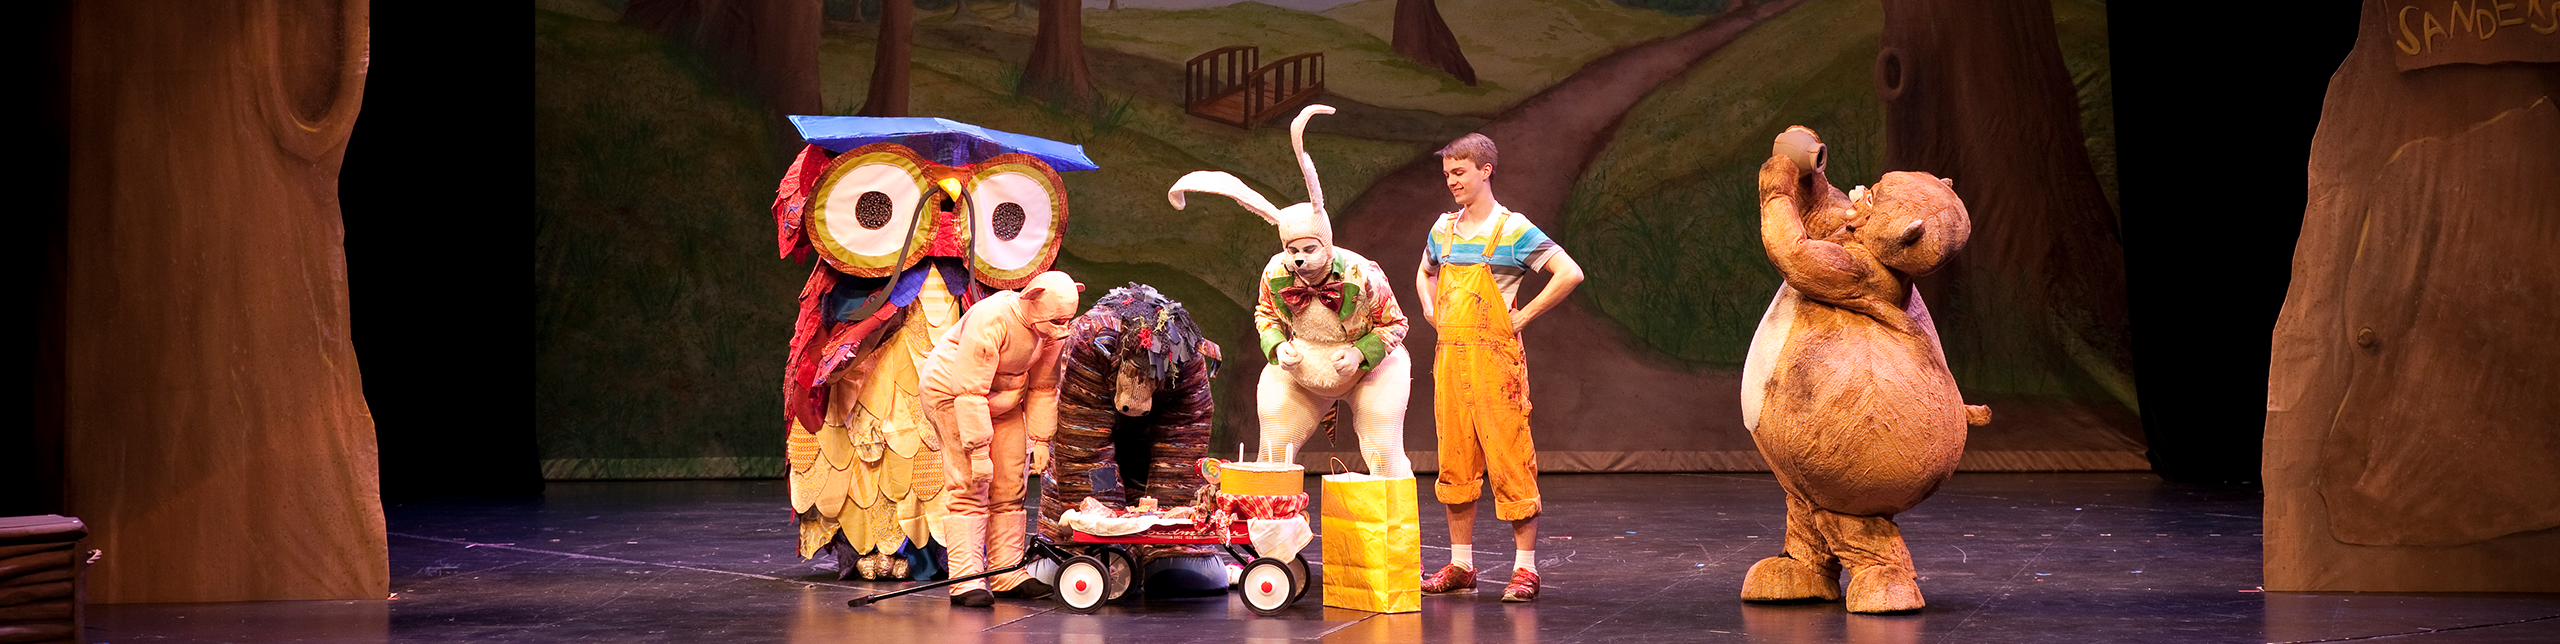 students performing Whinny the Poo on stage